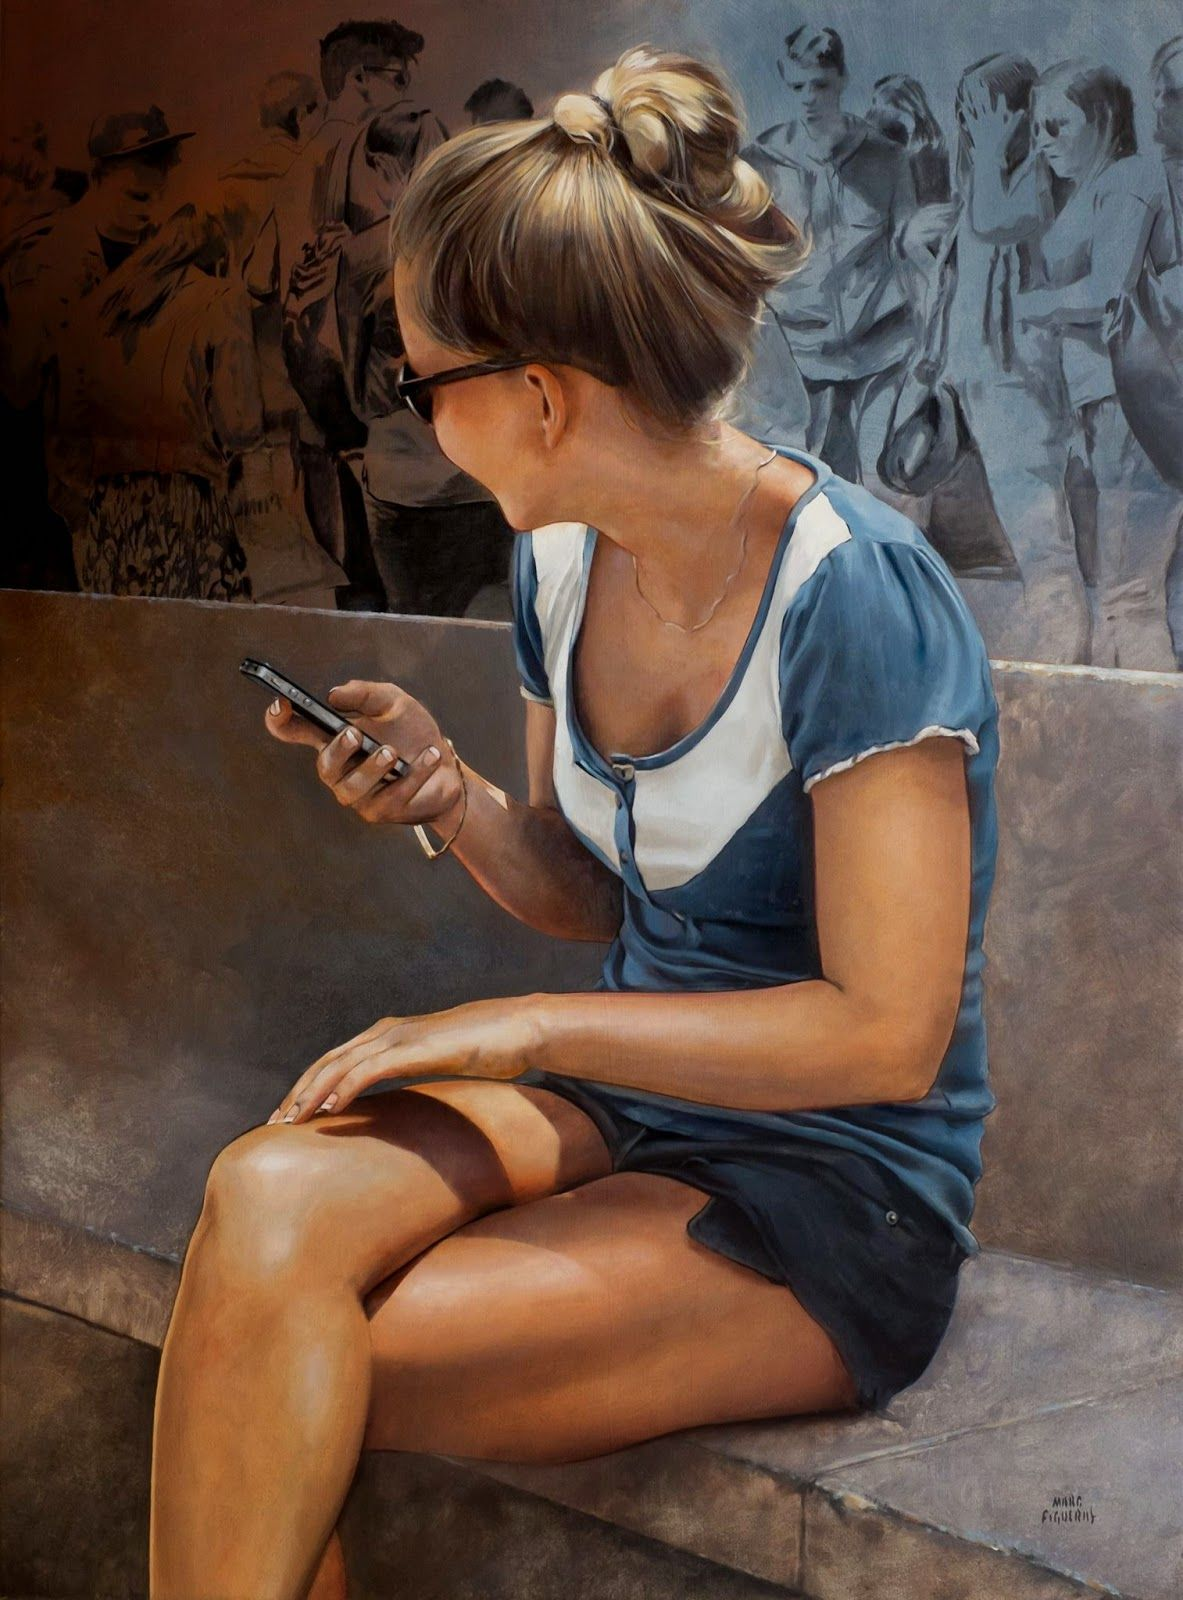 Hyper Realistic Girls Figure Painting By Marc Figueras 11